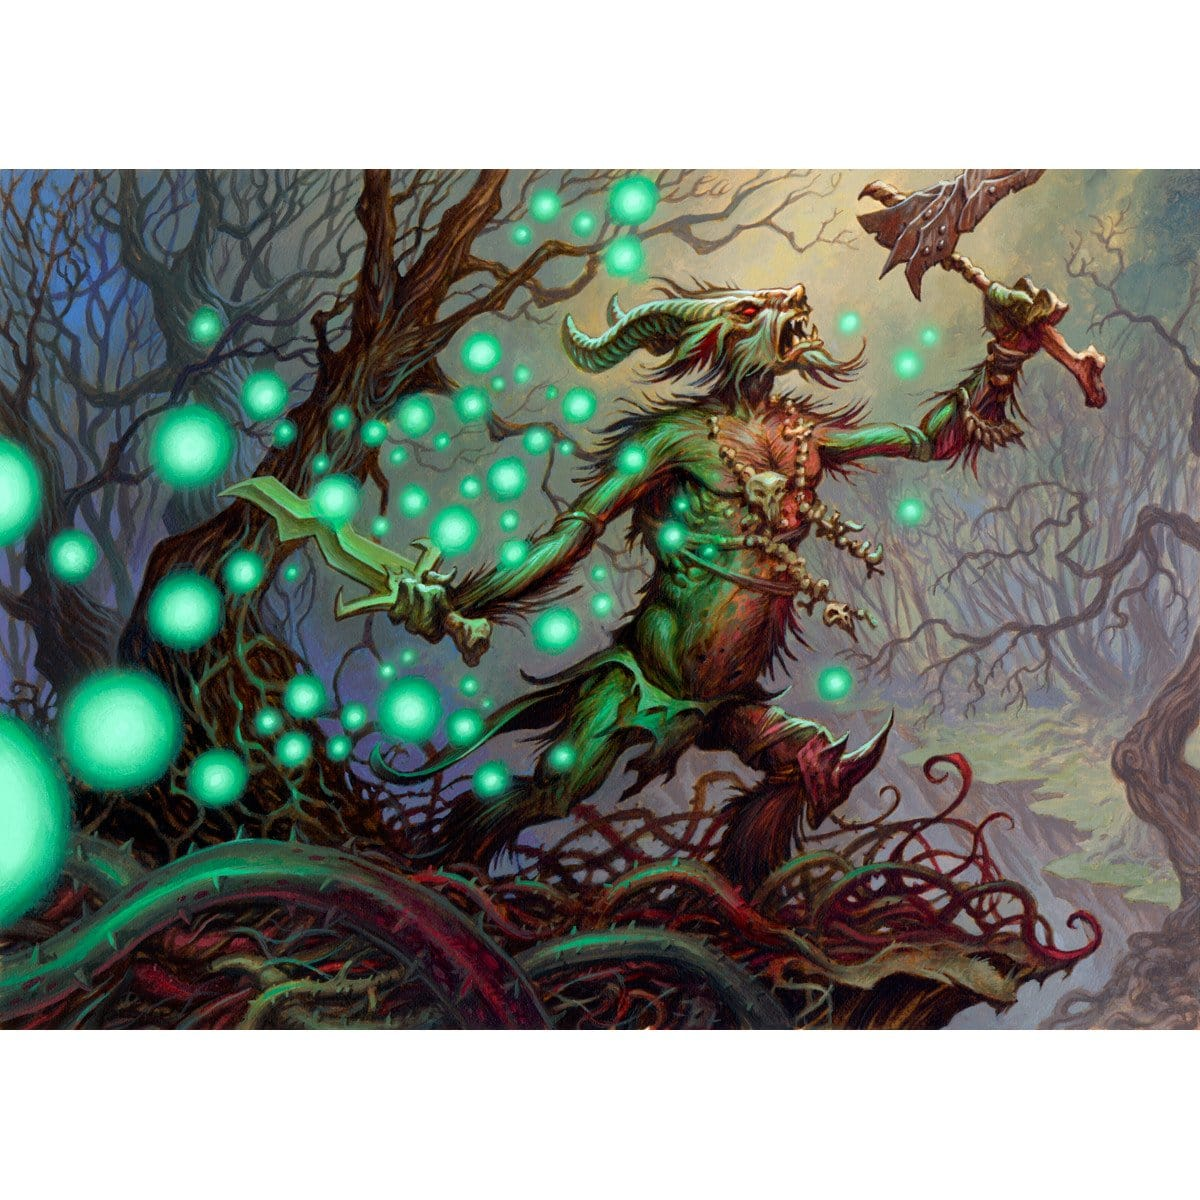 Viridescent Wisps Print - Print - Original Magic Art - Accessories for Magic the Gathering and other card games